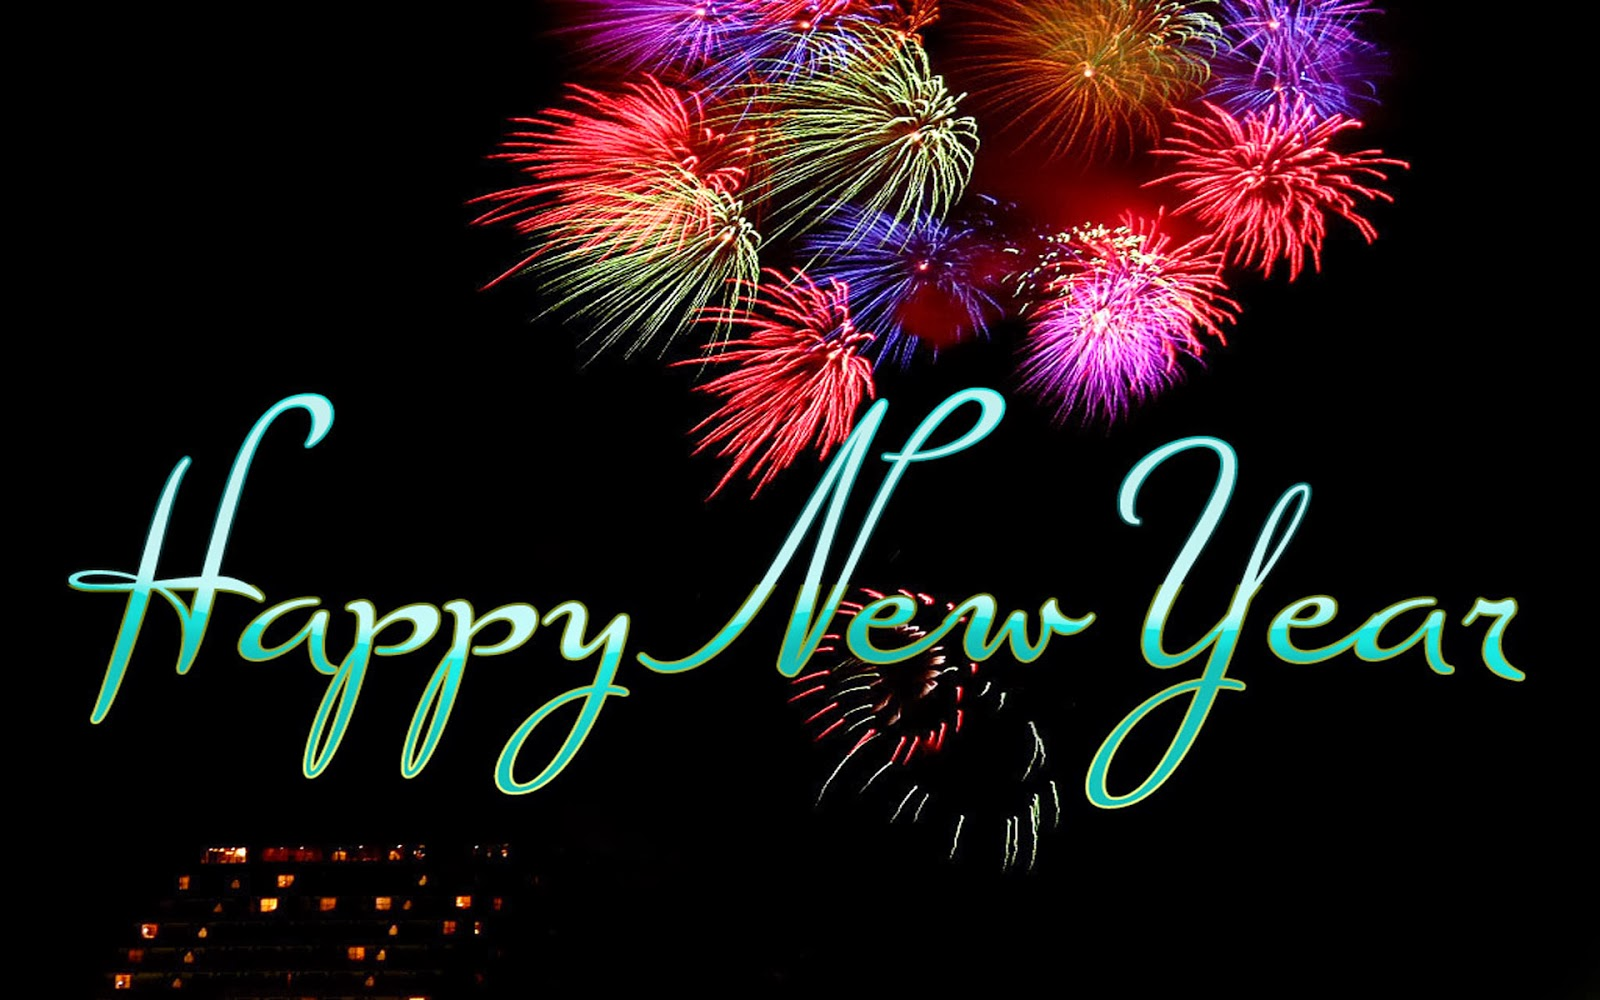 Happy New Year 2014 HD Wallpaper Download Happy New 1600x1000